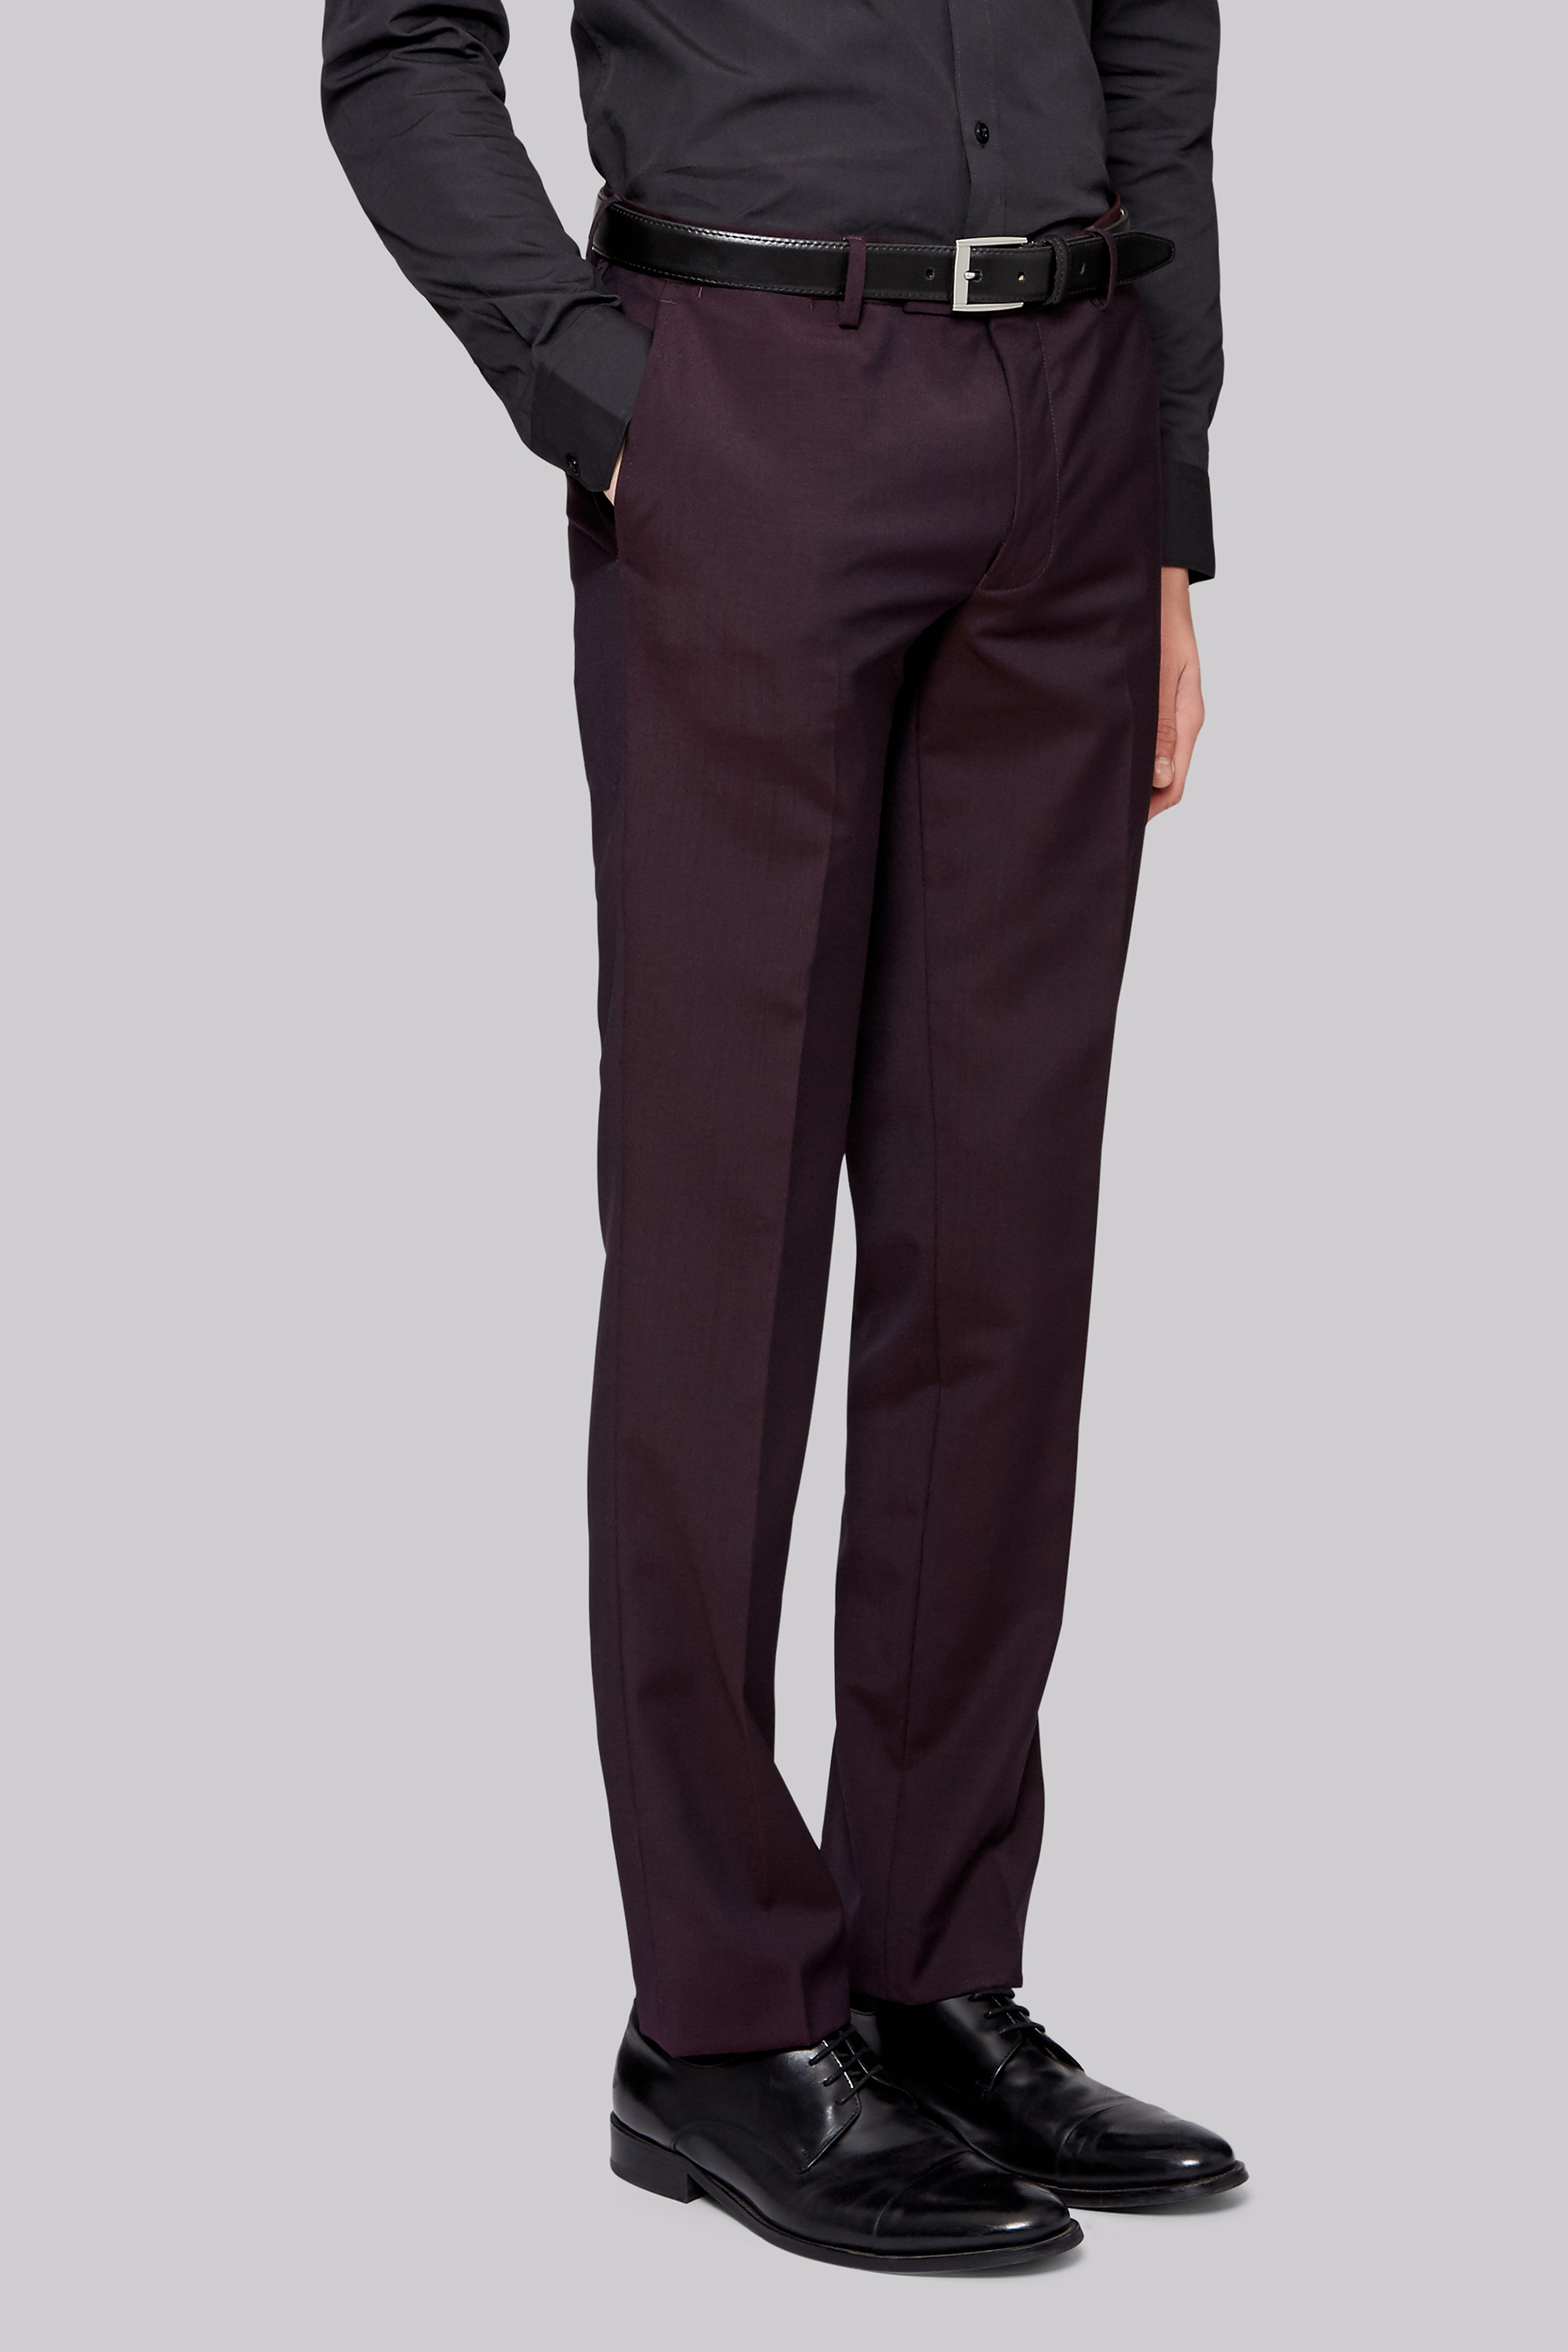 London Skinny Fit Burgundy Suit Trousers